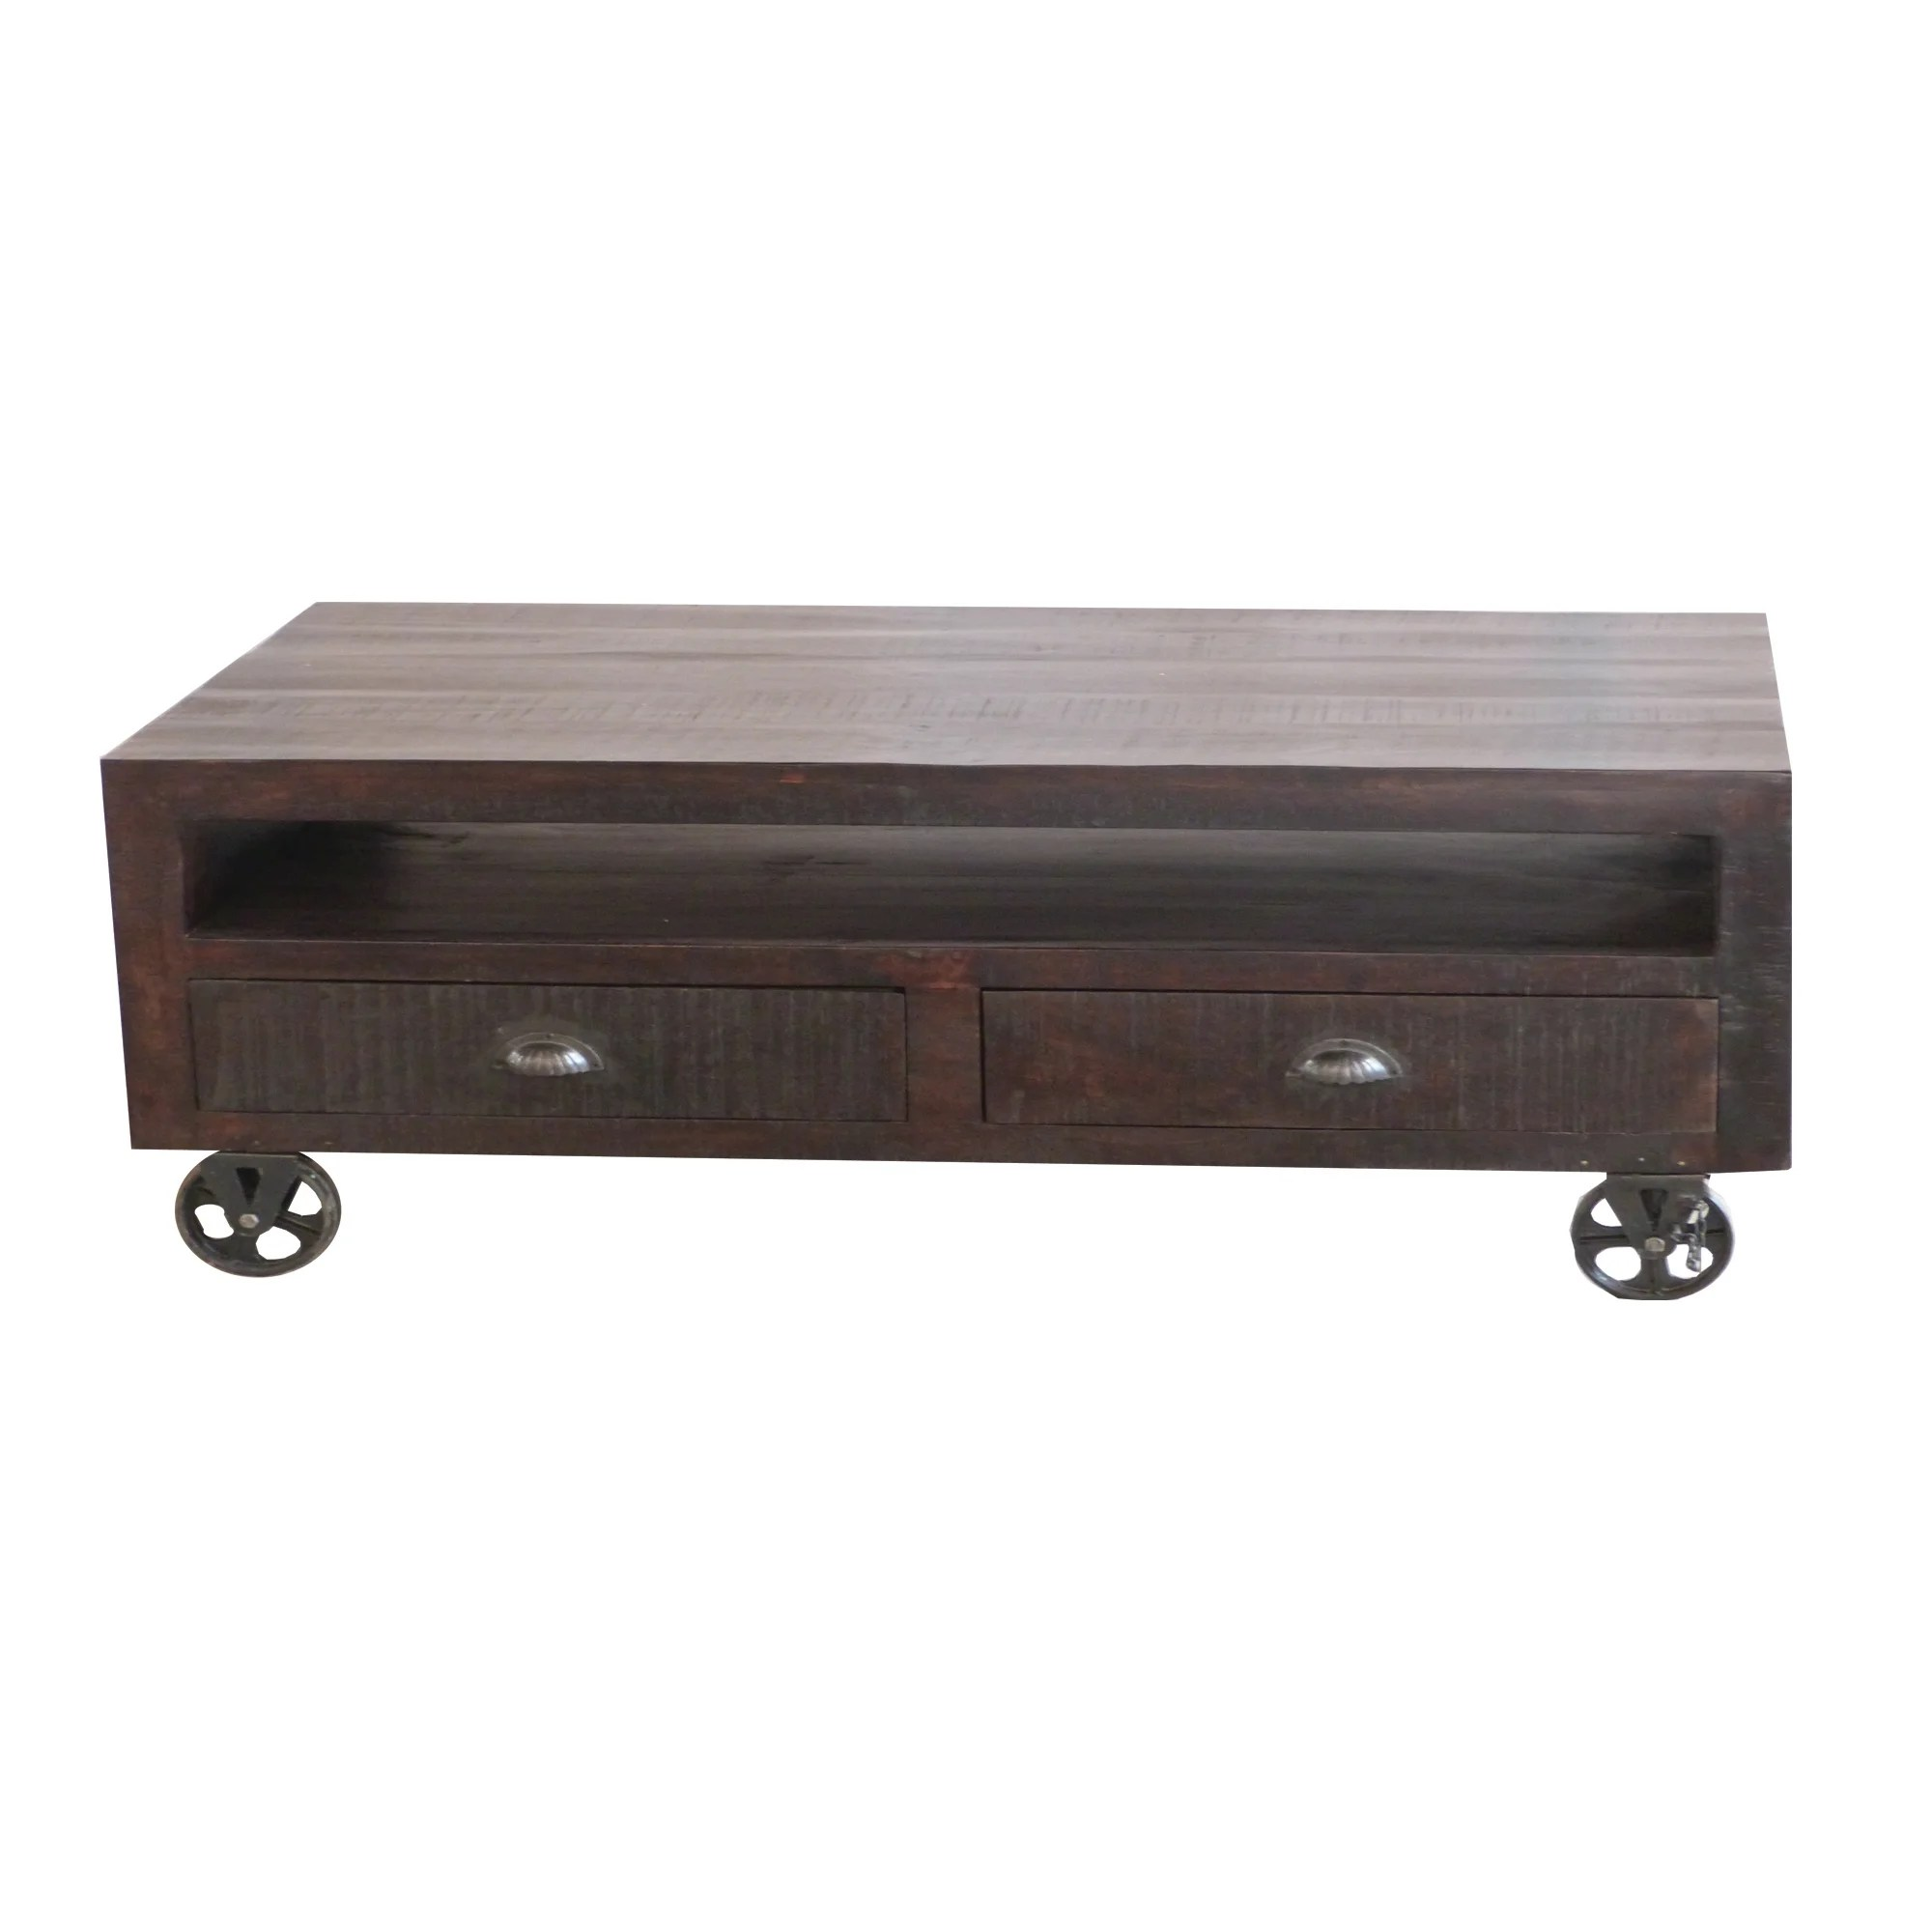 Home Decorators Coffee Table Yosemite Home Decor Coffee Table And Reviews Wayfair Ca